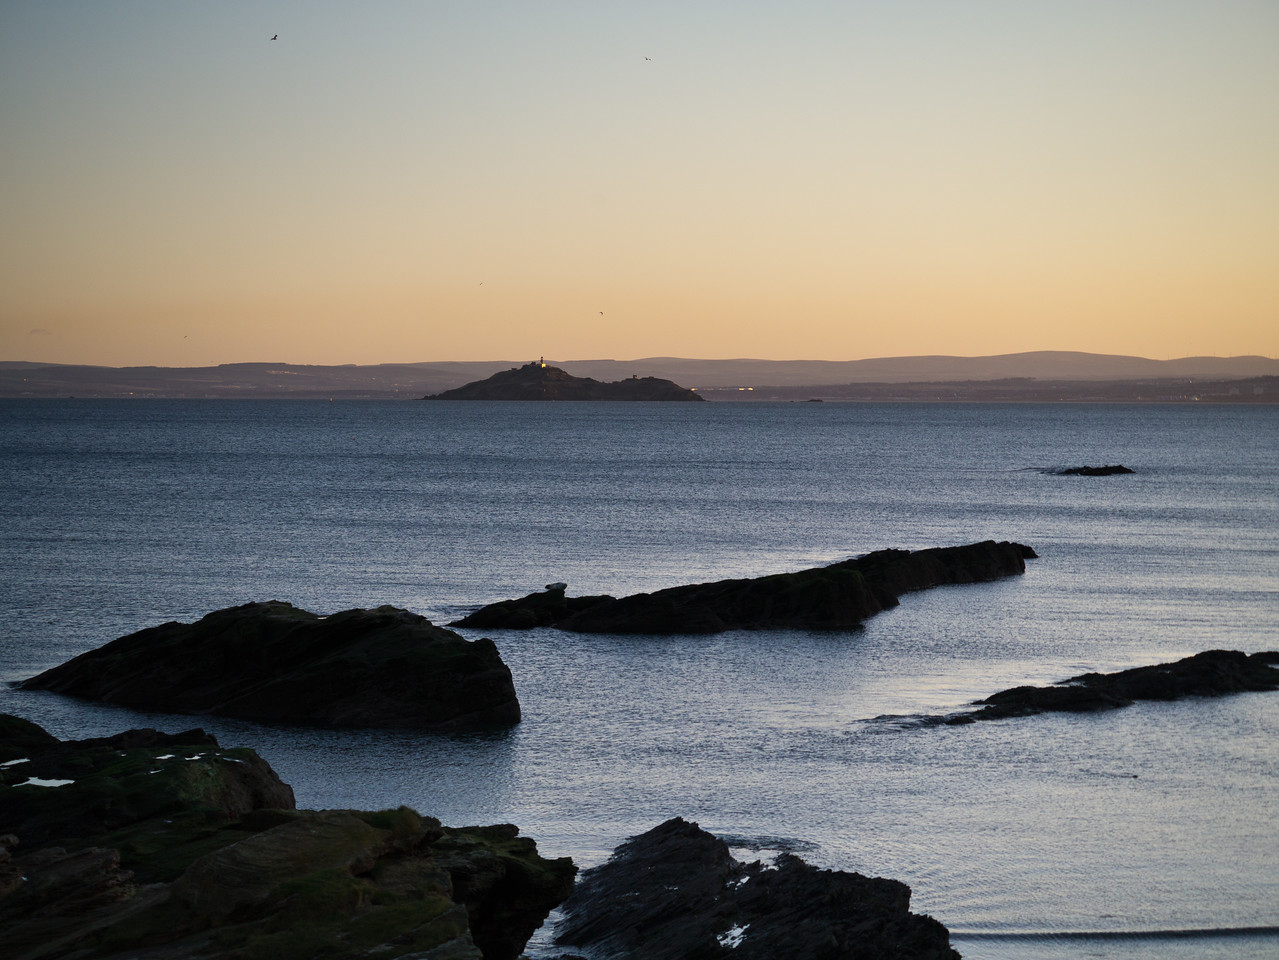 Looking at the Island of Inchkeith